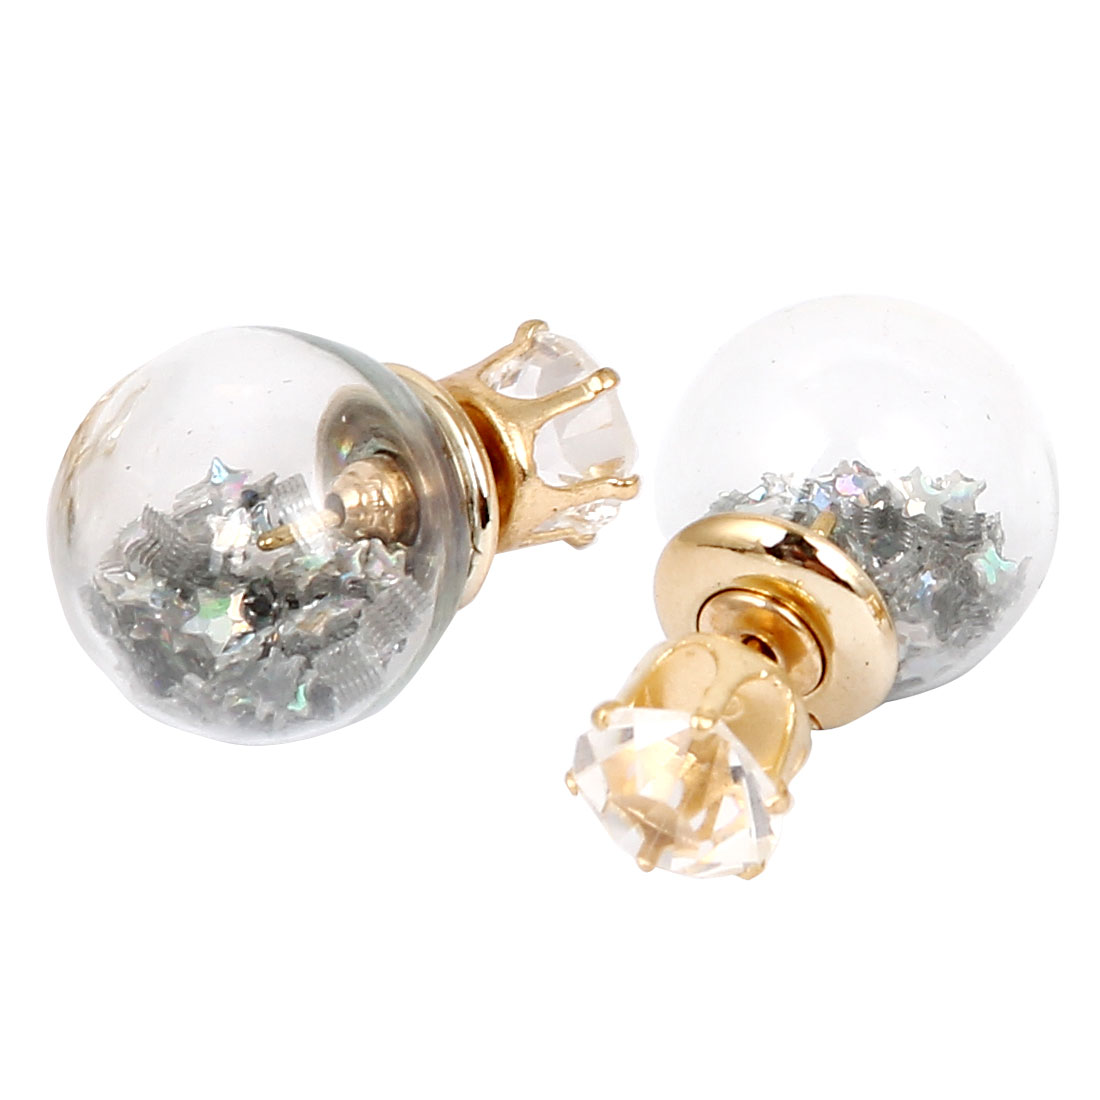 Women Faux Crystal Inlaid Round Bulb Design Double Side Stud Earrings Silver Tone Pair